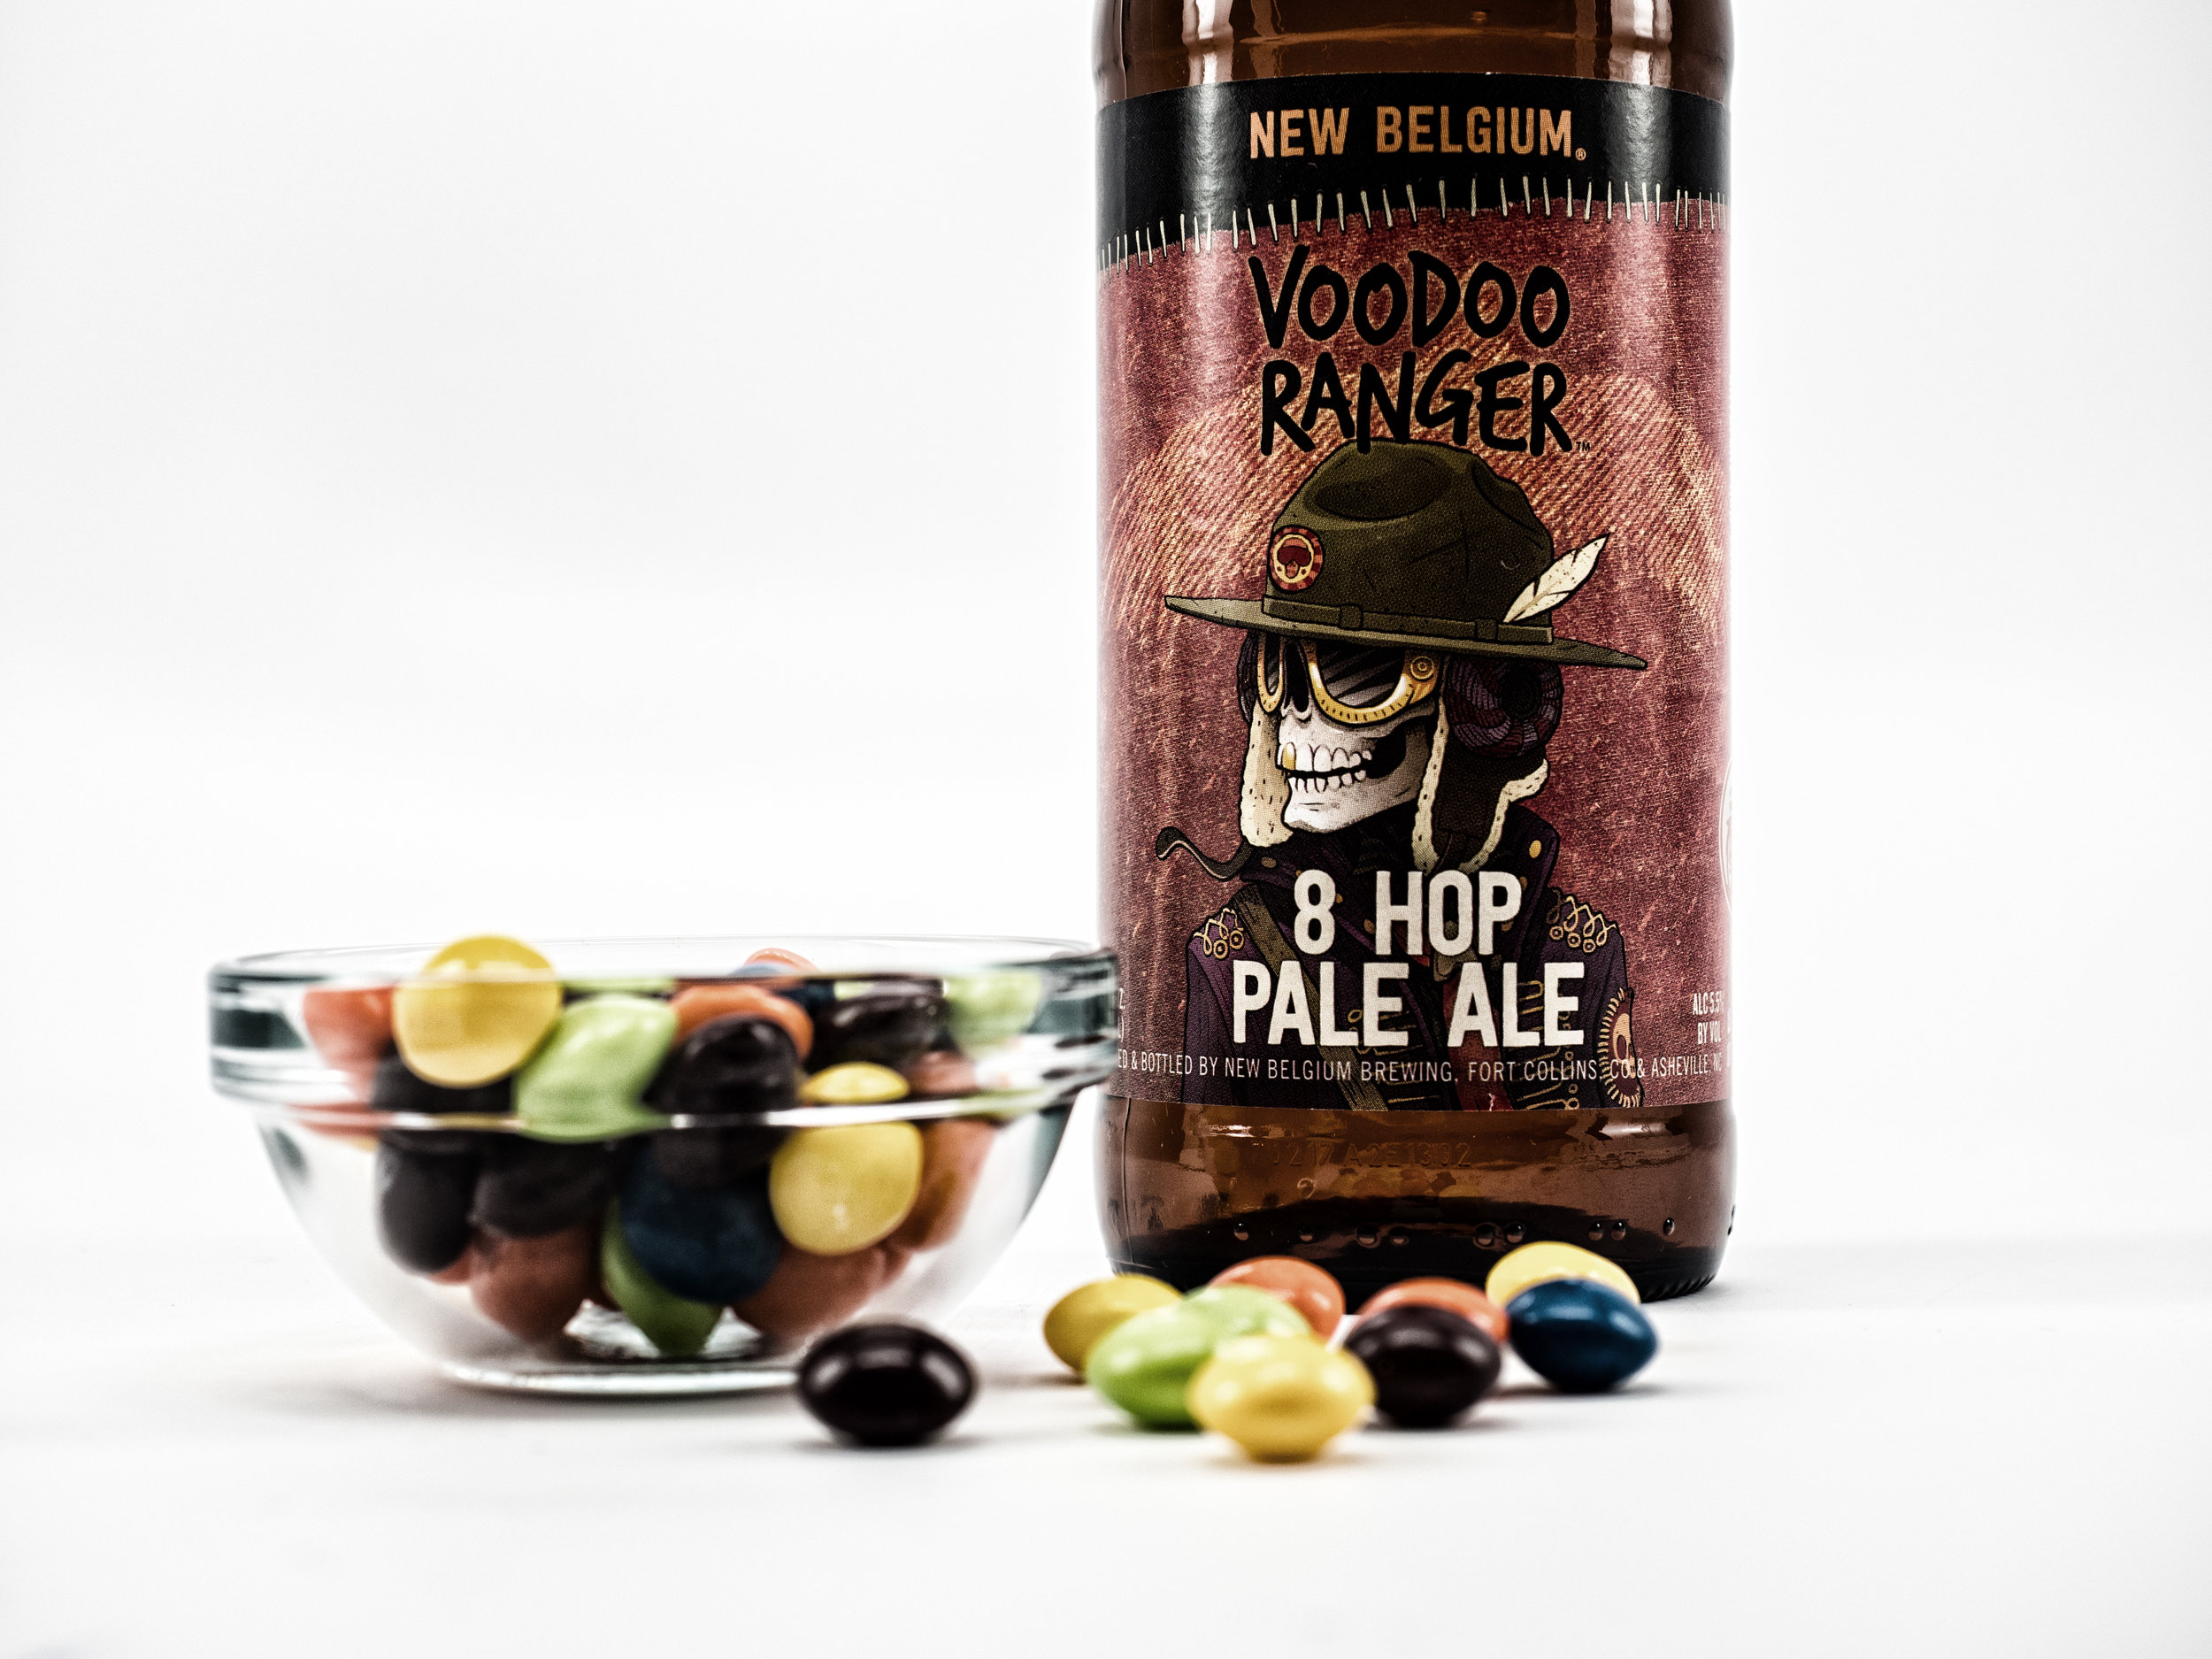 Musings by the Glass - Pairing Beer with Halloween Candy - Voodoo Ranger 8 Hop Pale Ale and Skittles